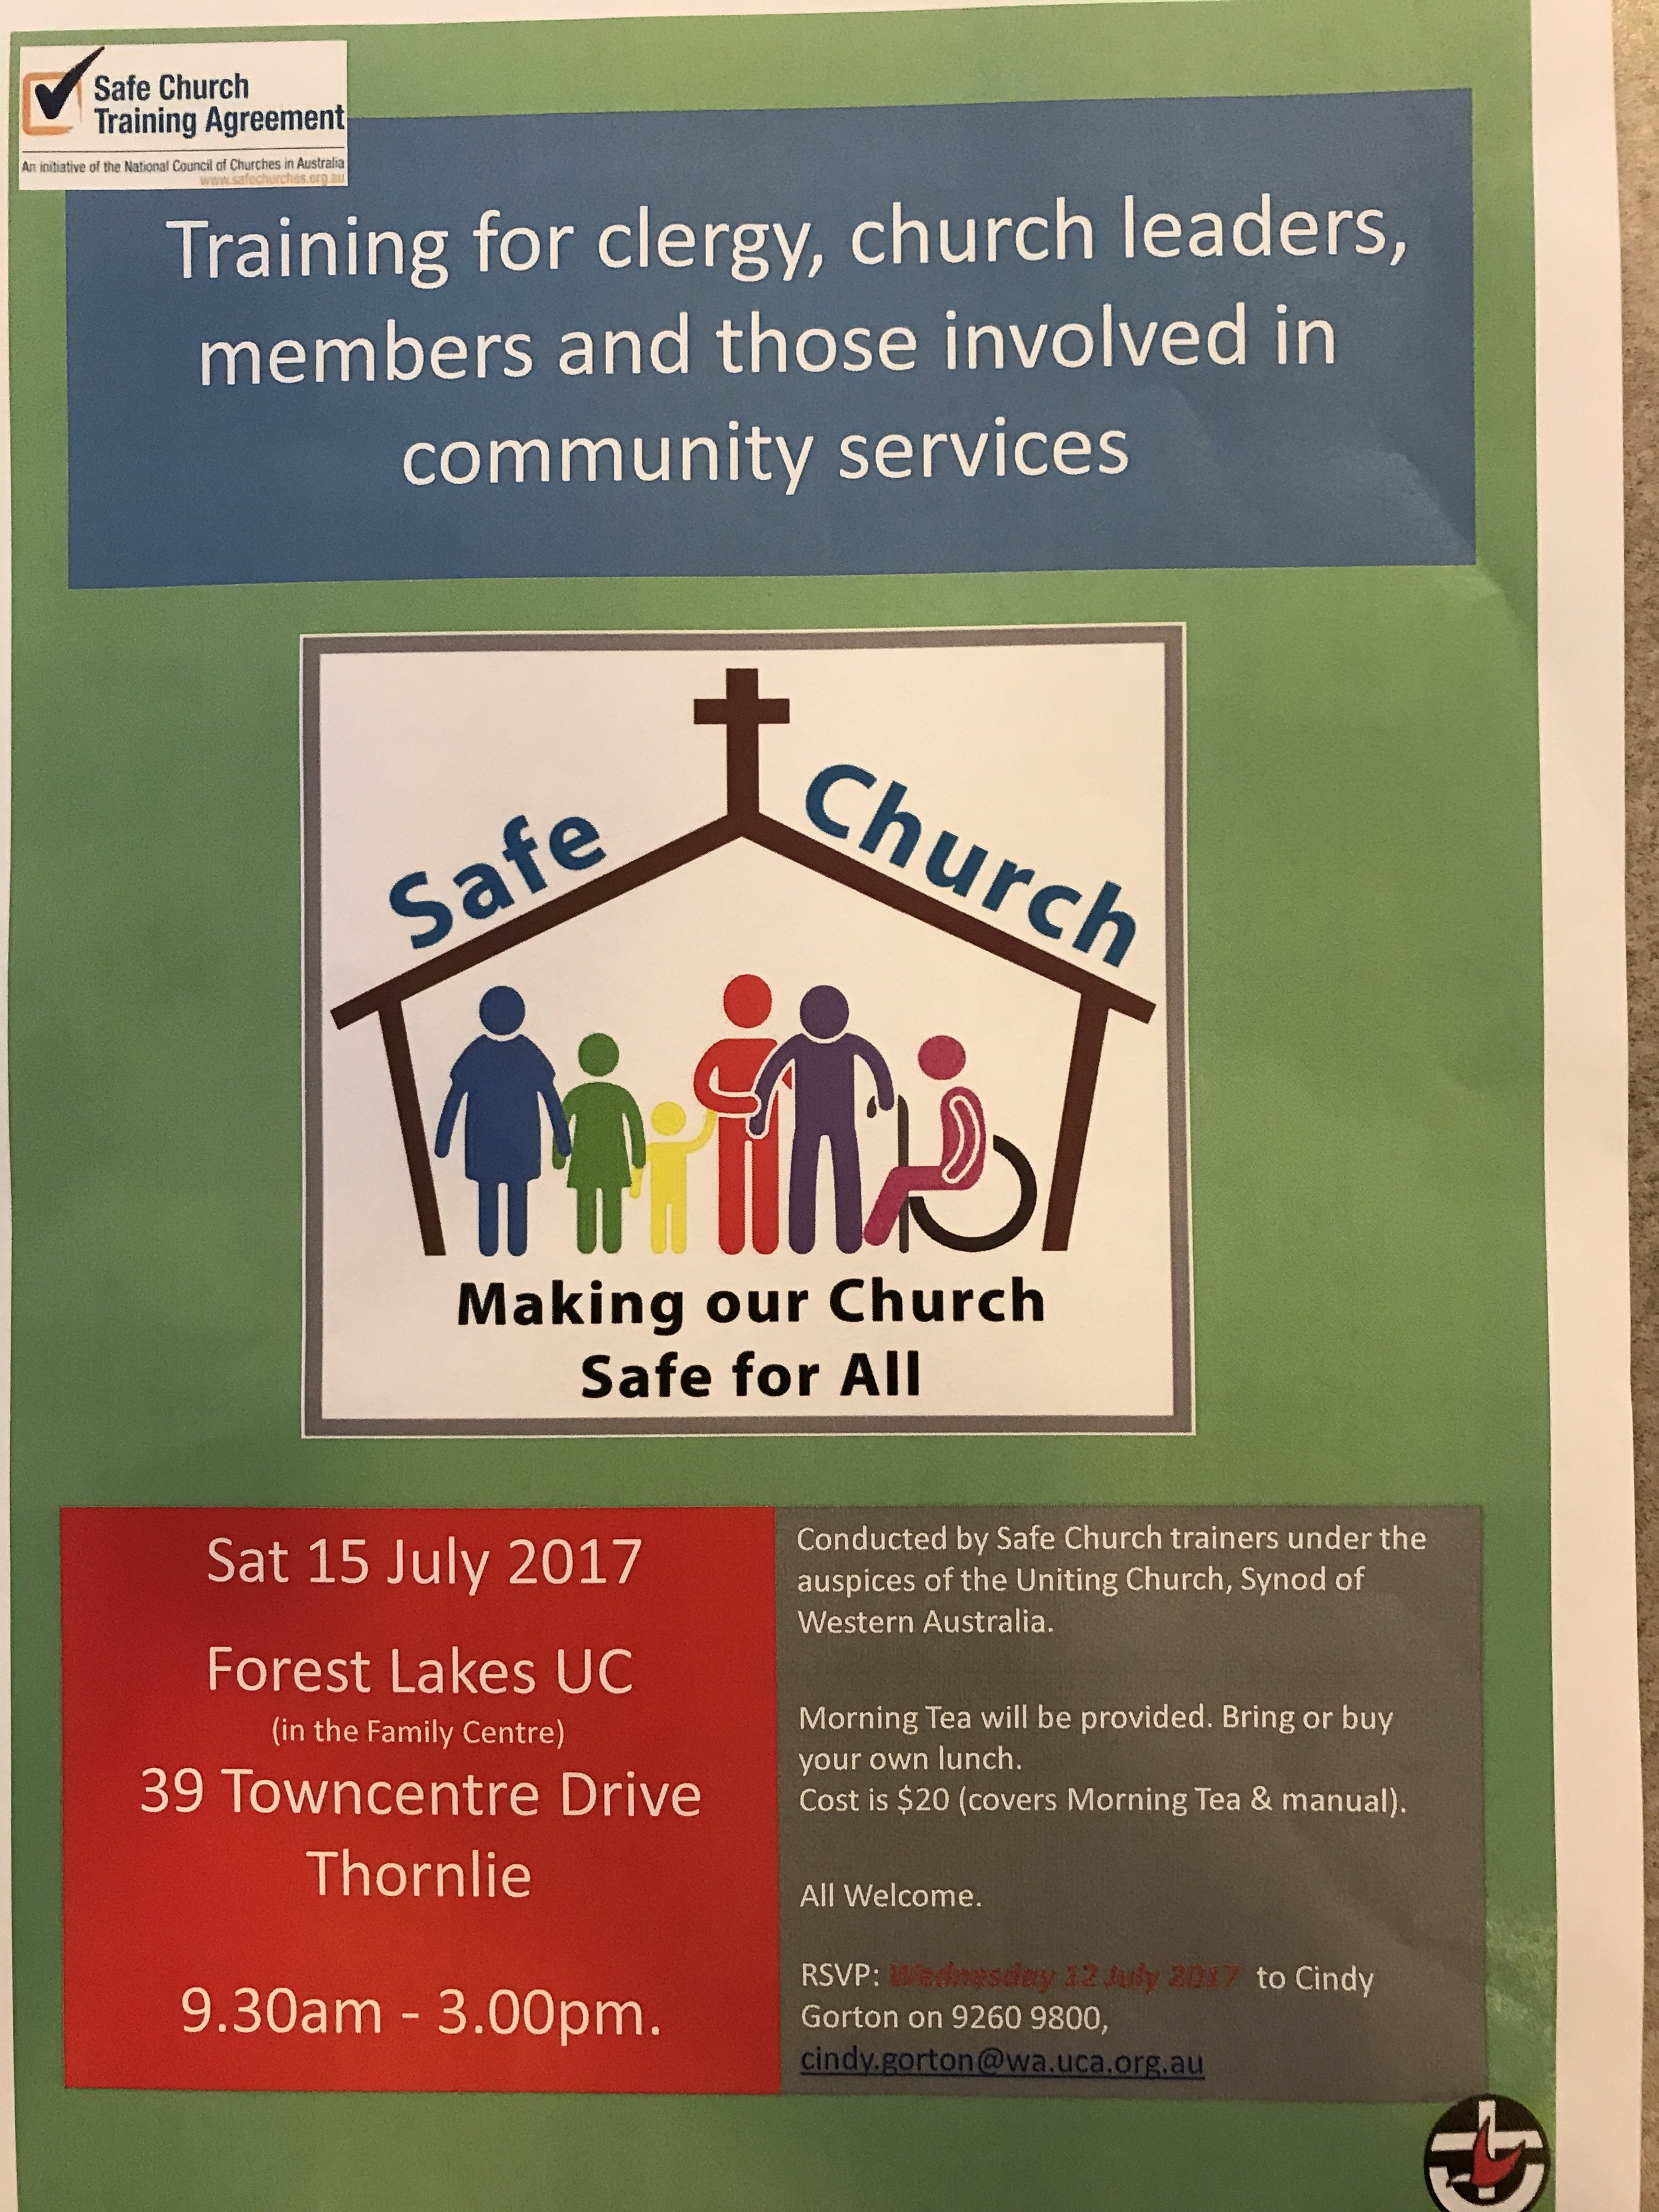 This event is open to all members of our community.